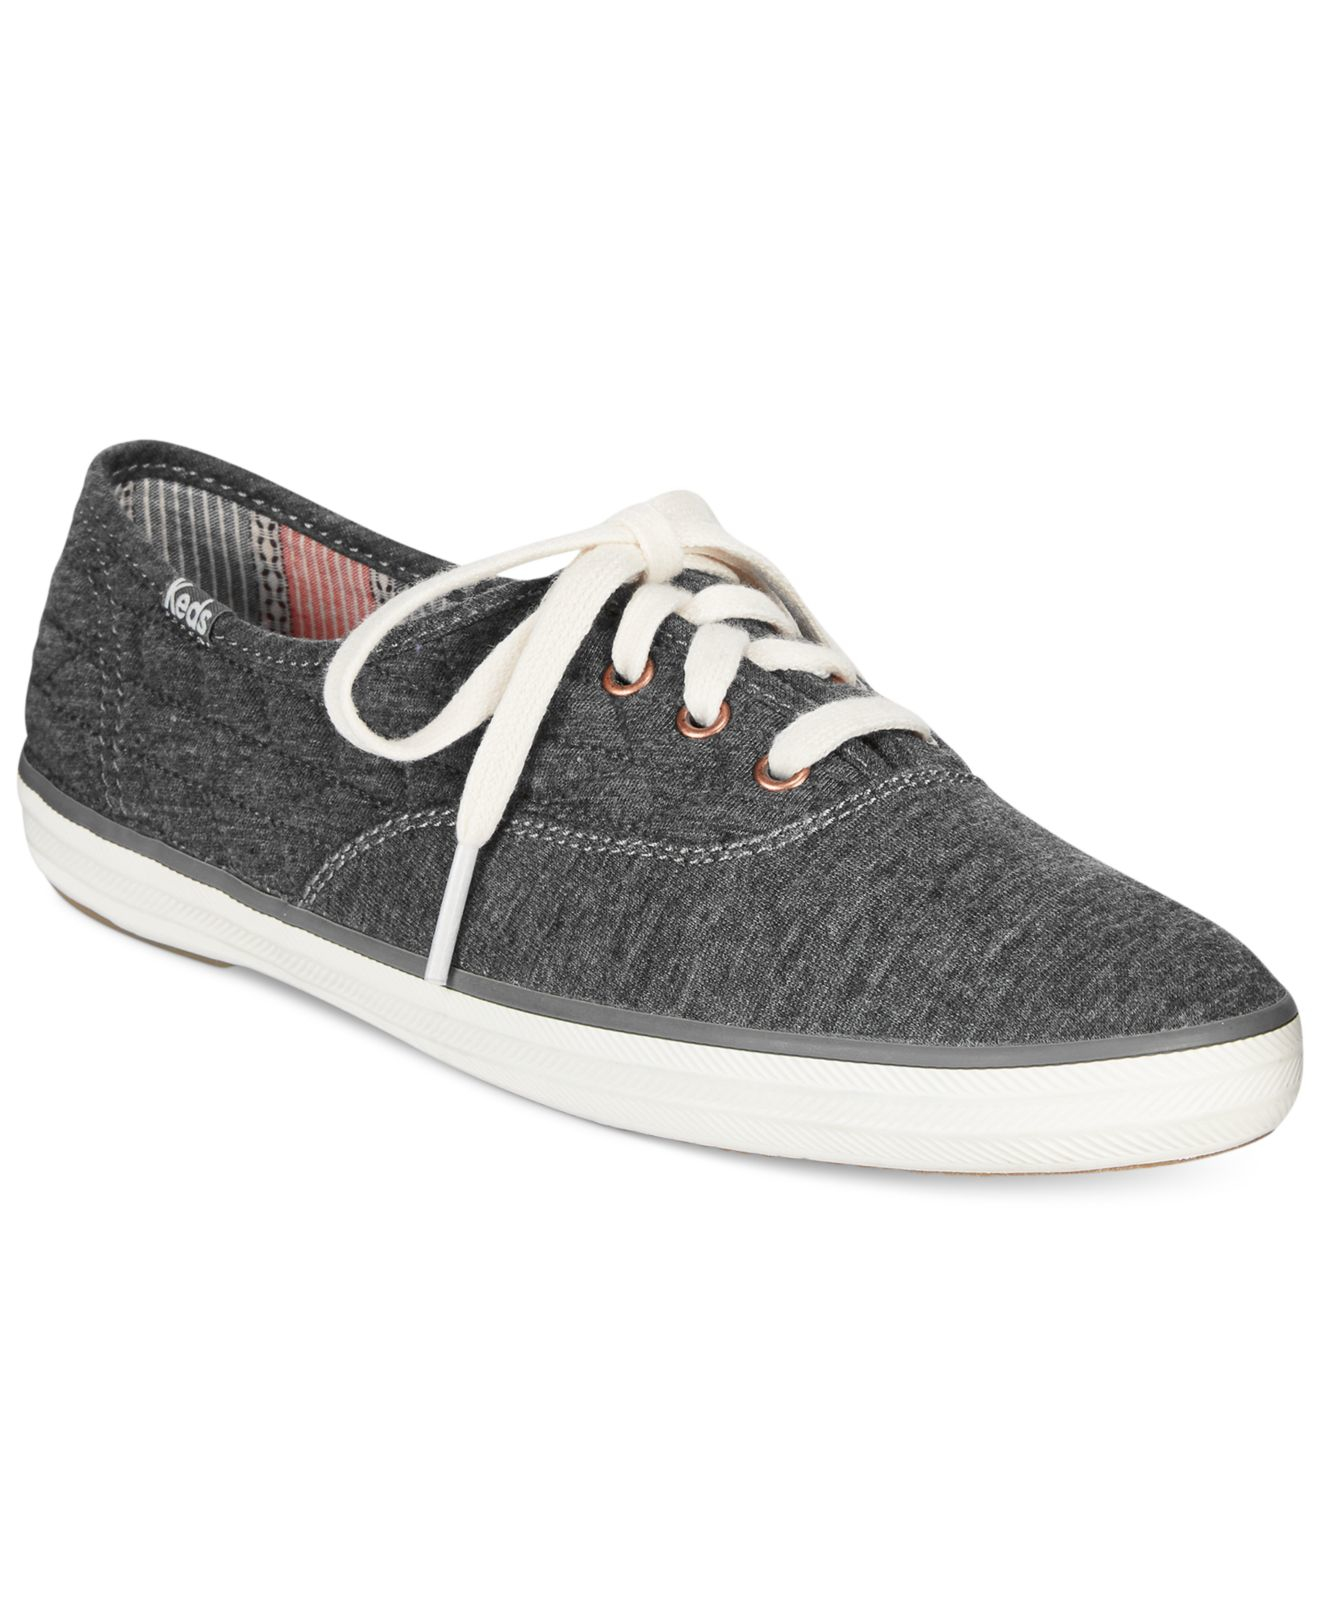 badb4942d8e5e Lyst - Keds Women s Quilted Jersey Champion Sneakers in Gray